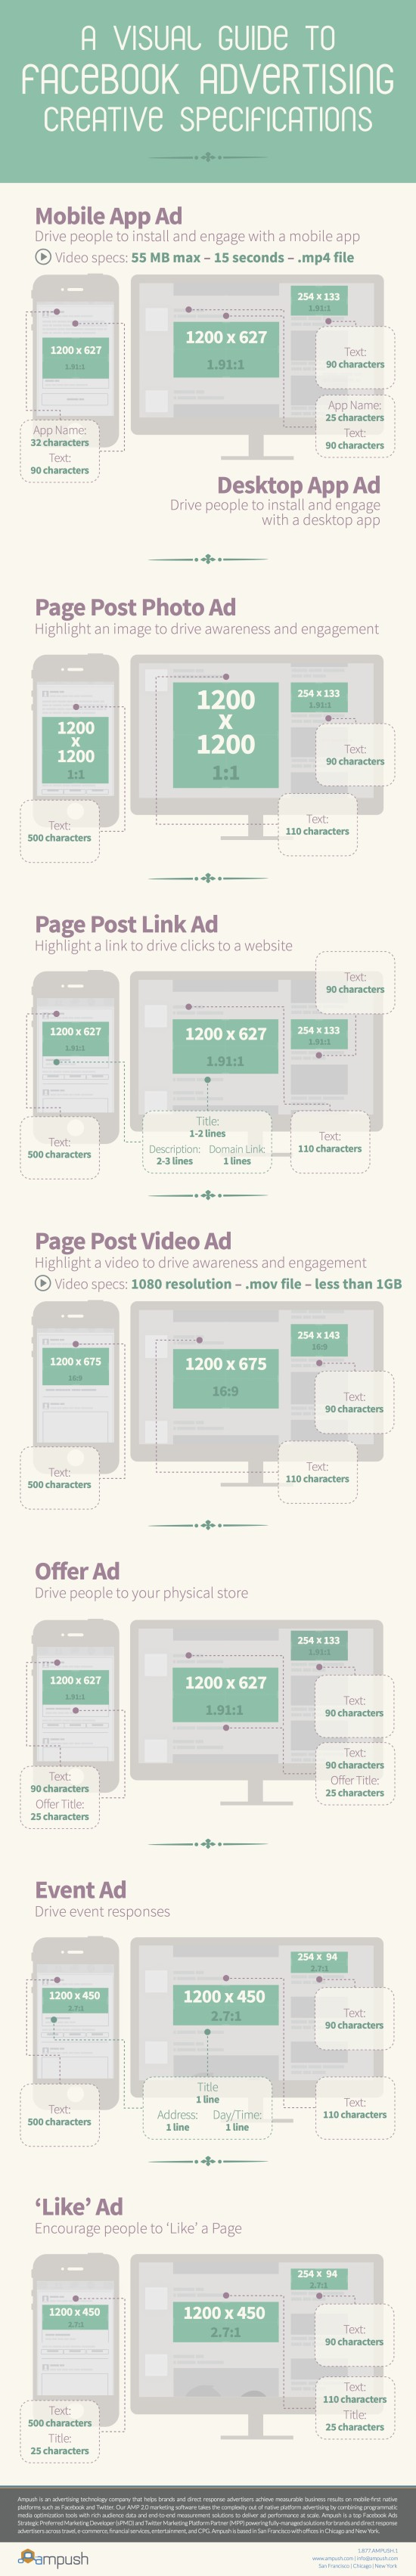 Ampush-Visual-Guide-to-Facebook-Creative-Specs-May-2014